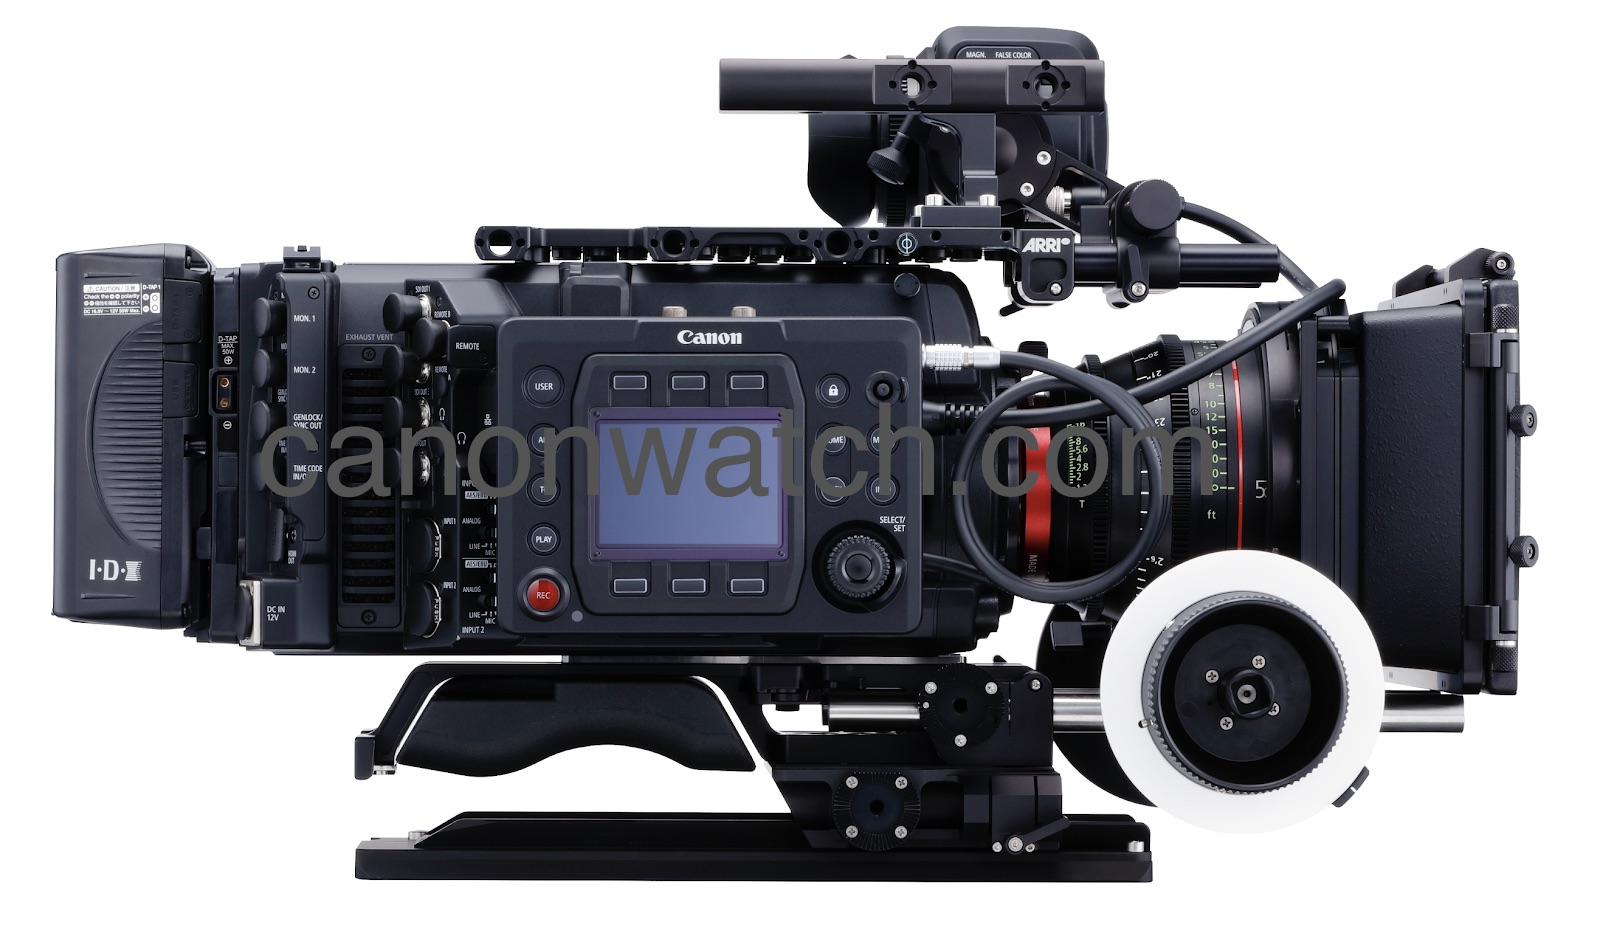 This is the upcoming EOS C700 full frame Cinema camera